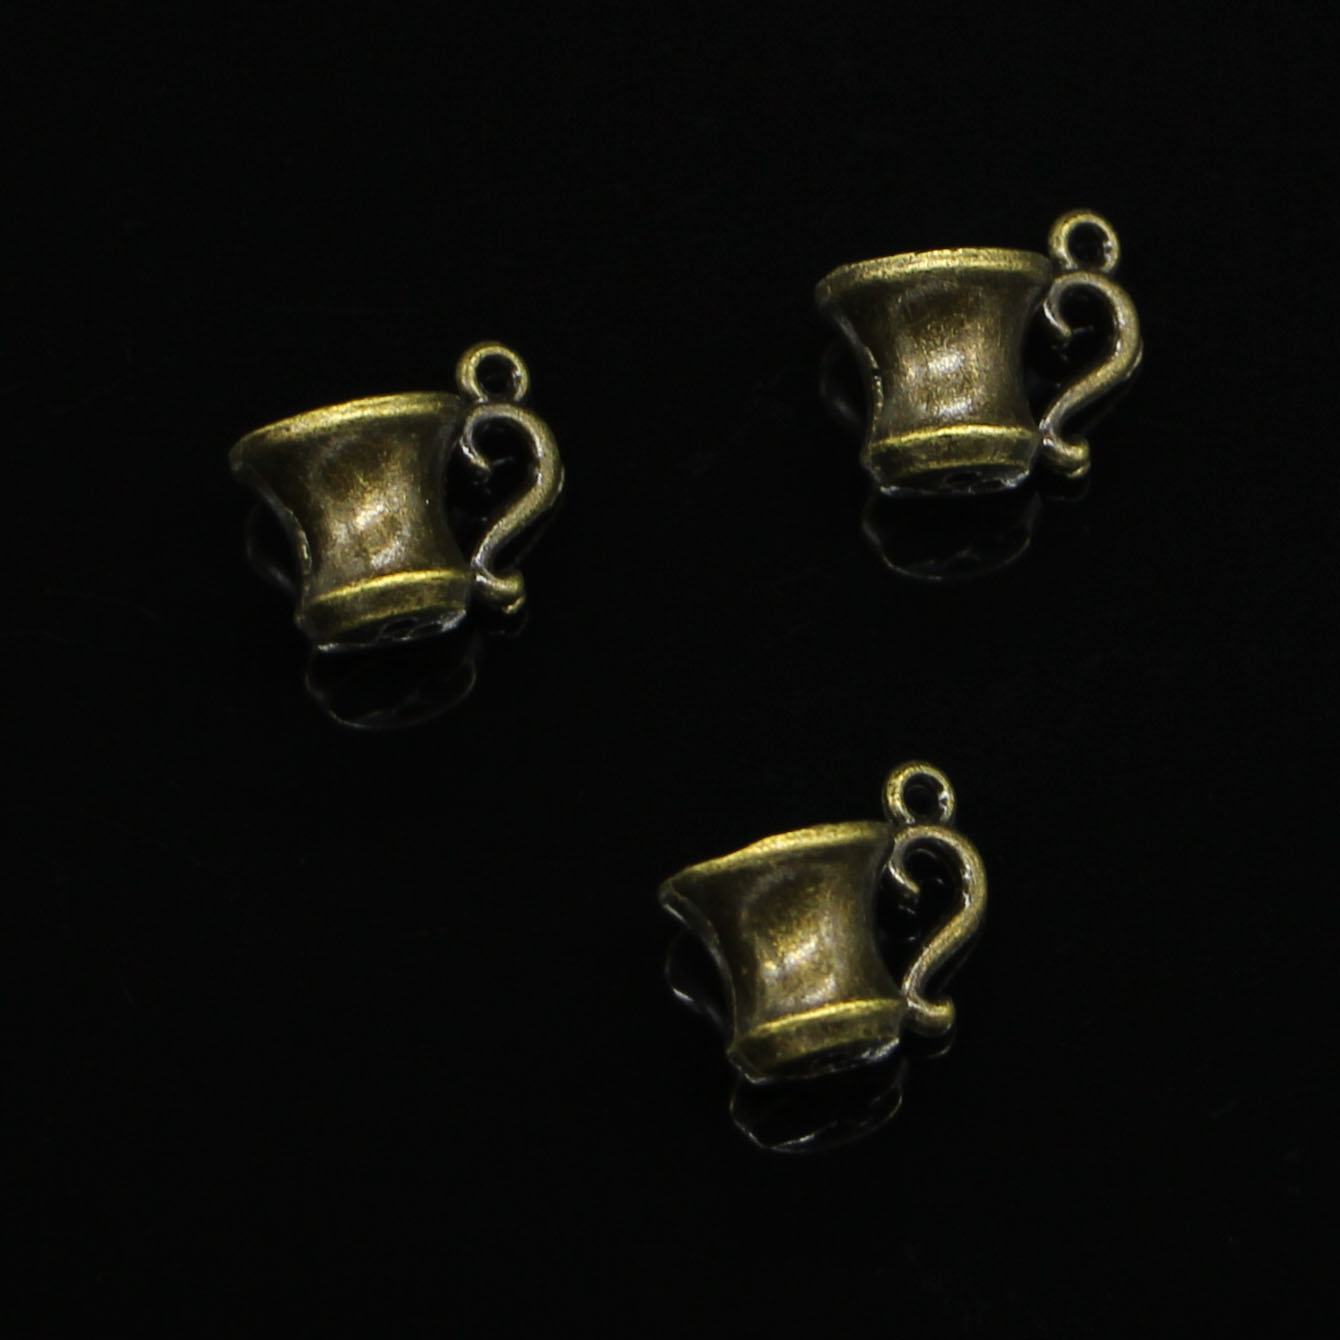 60pcs Antique Bronze Plated 3D teacup Charms for Jewelry Making DIY Handmade Pendants 10*15mm